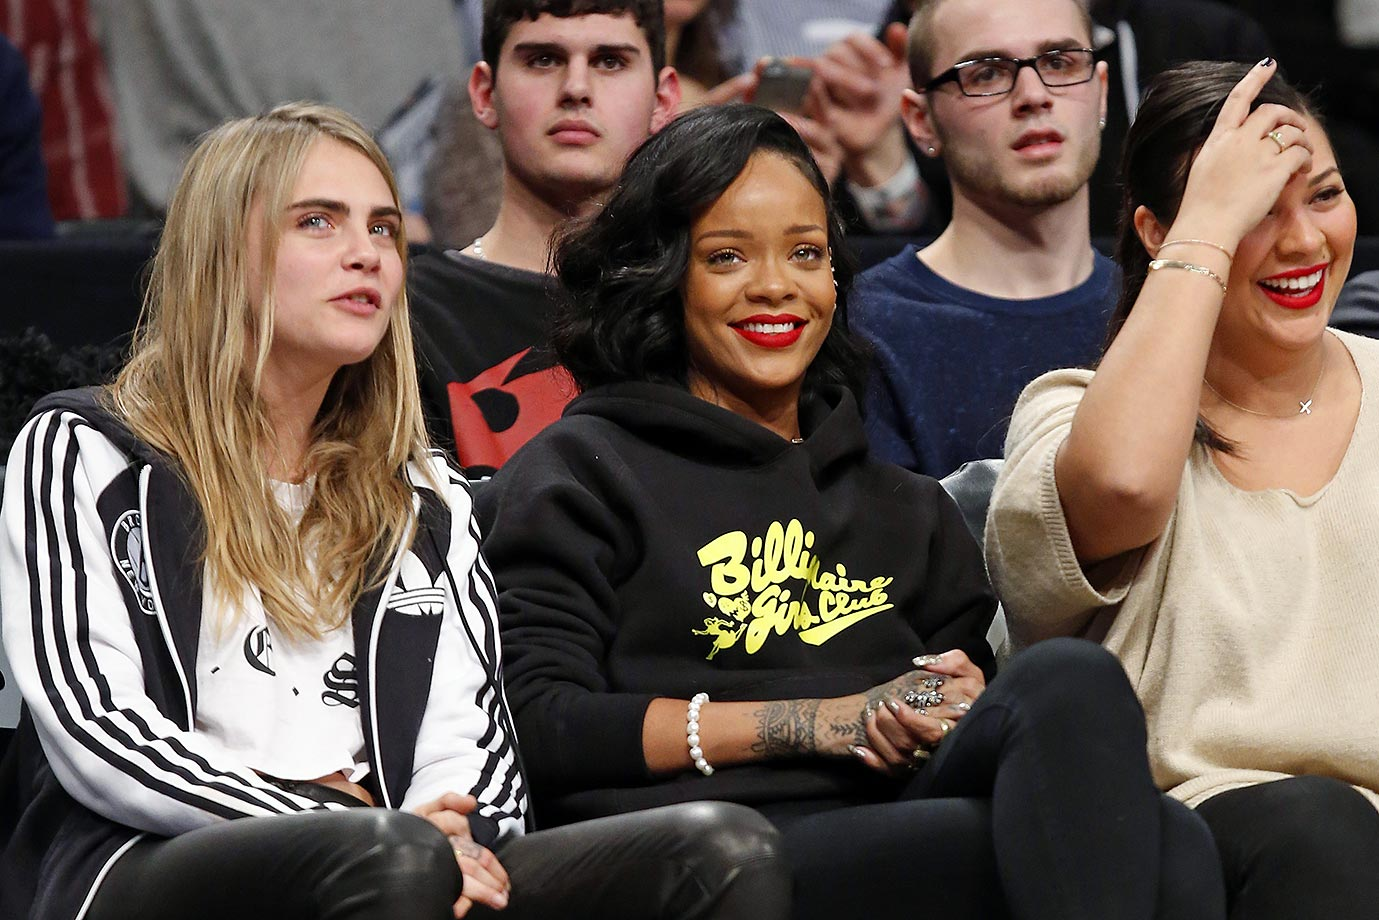 Model Cara Delevingne and Rihanna attend the Brooklyn Nets game against the Atlanta Hawks on Jan. 6, 2014 at the Barclays Center in the Brooklyn borough of New York City.